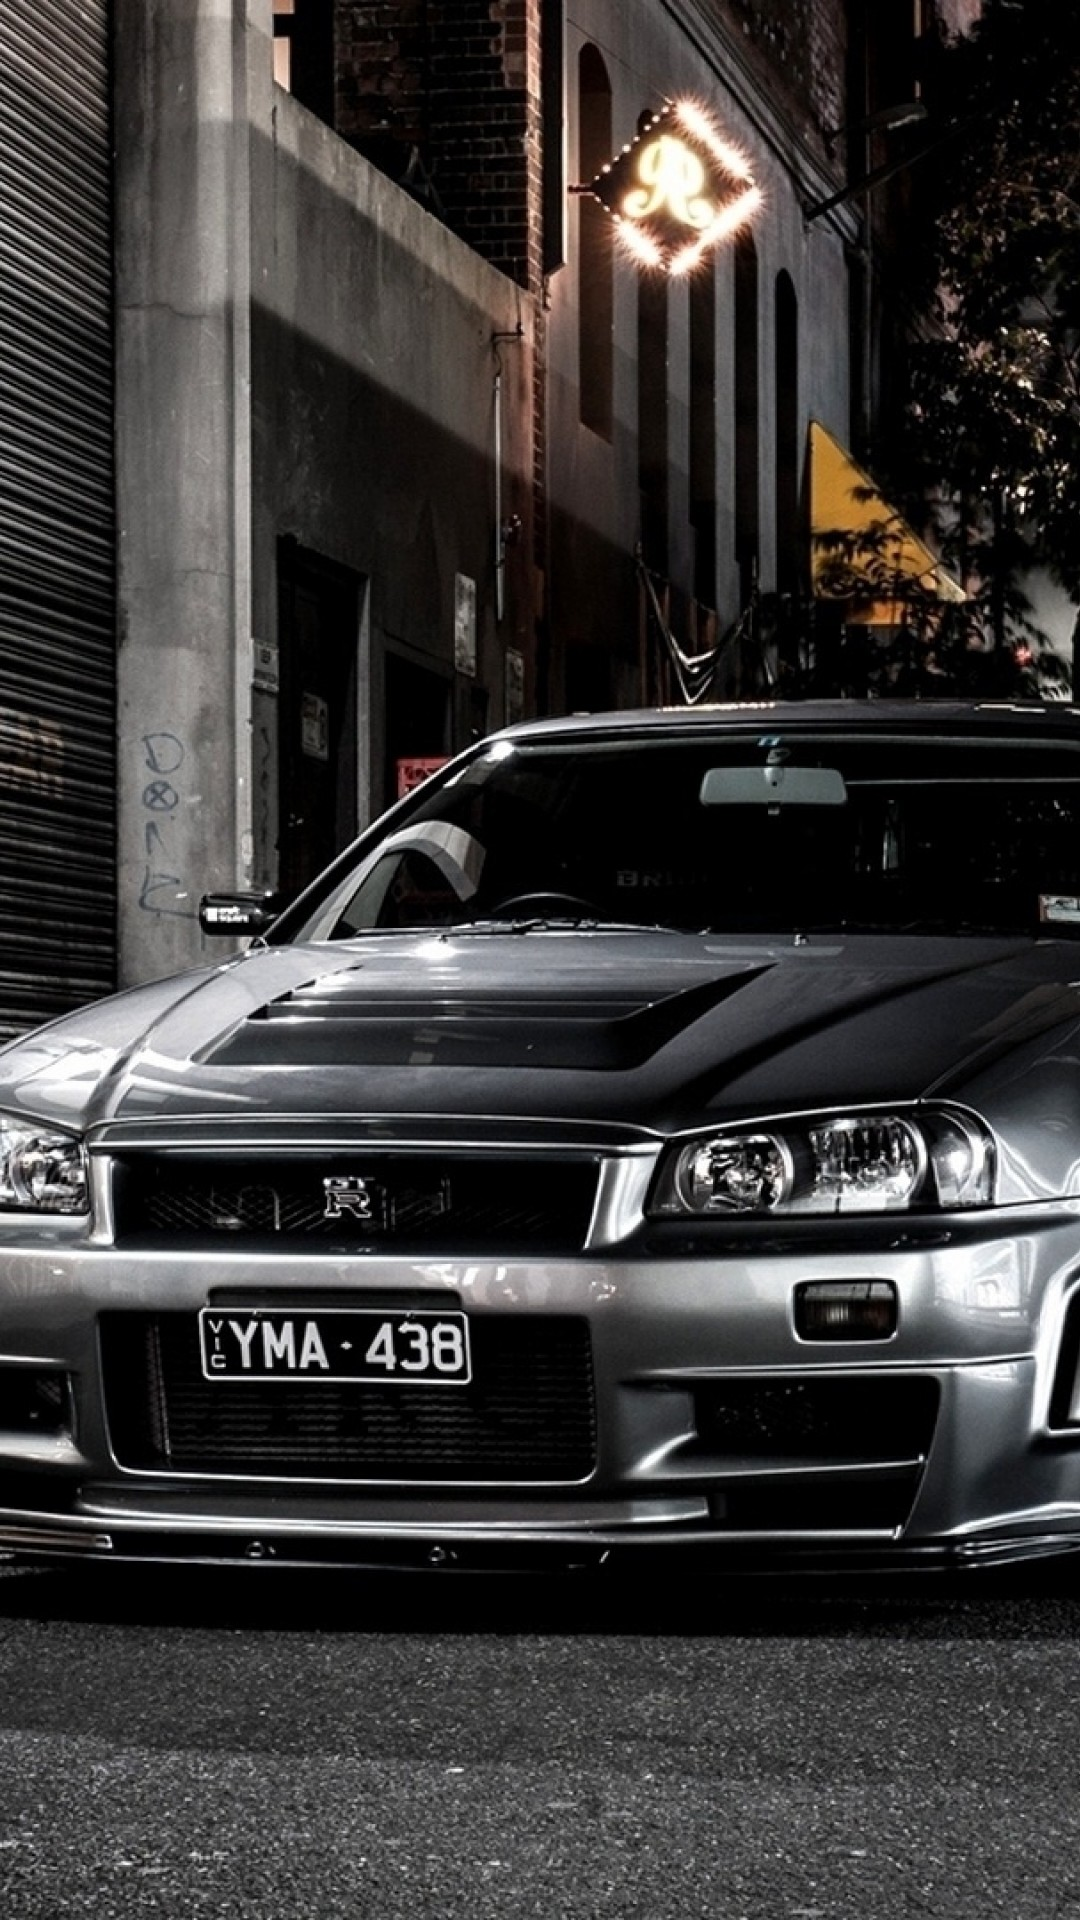 Nissan Skyline Wallpaper 4k Iphone